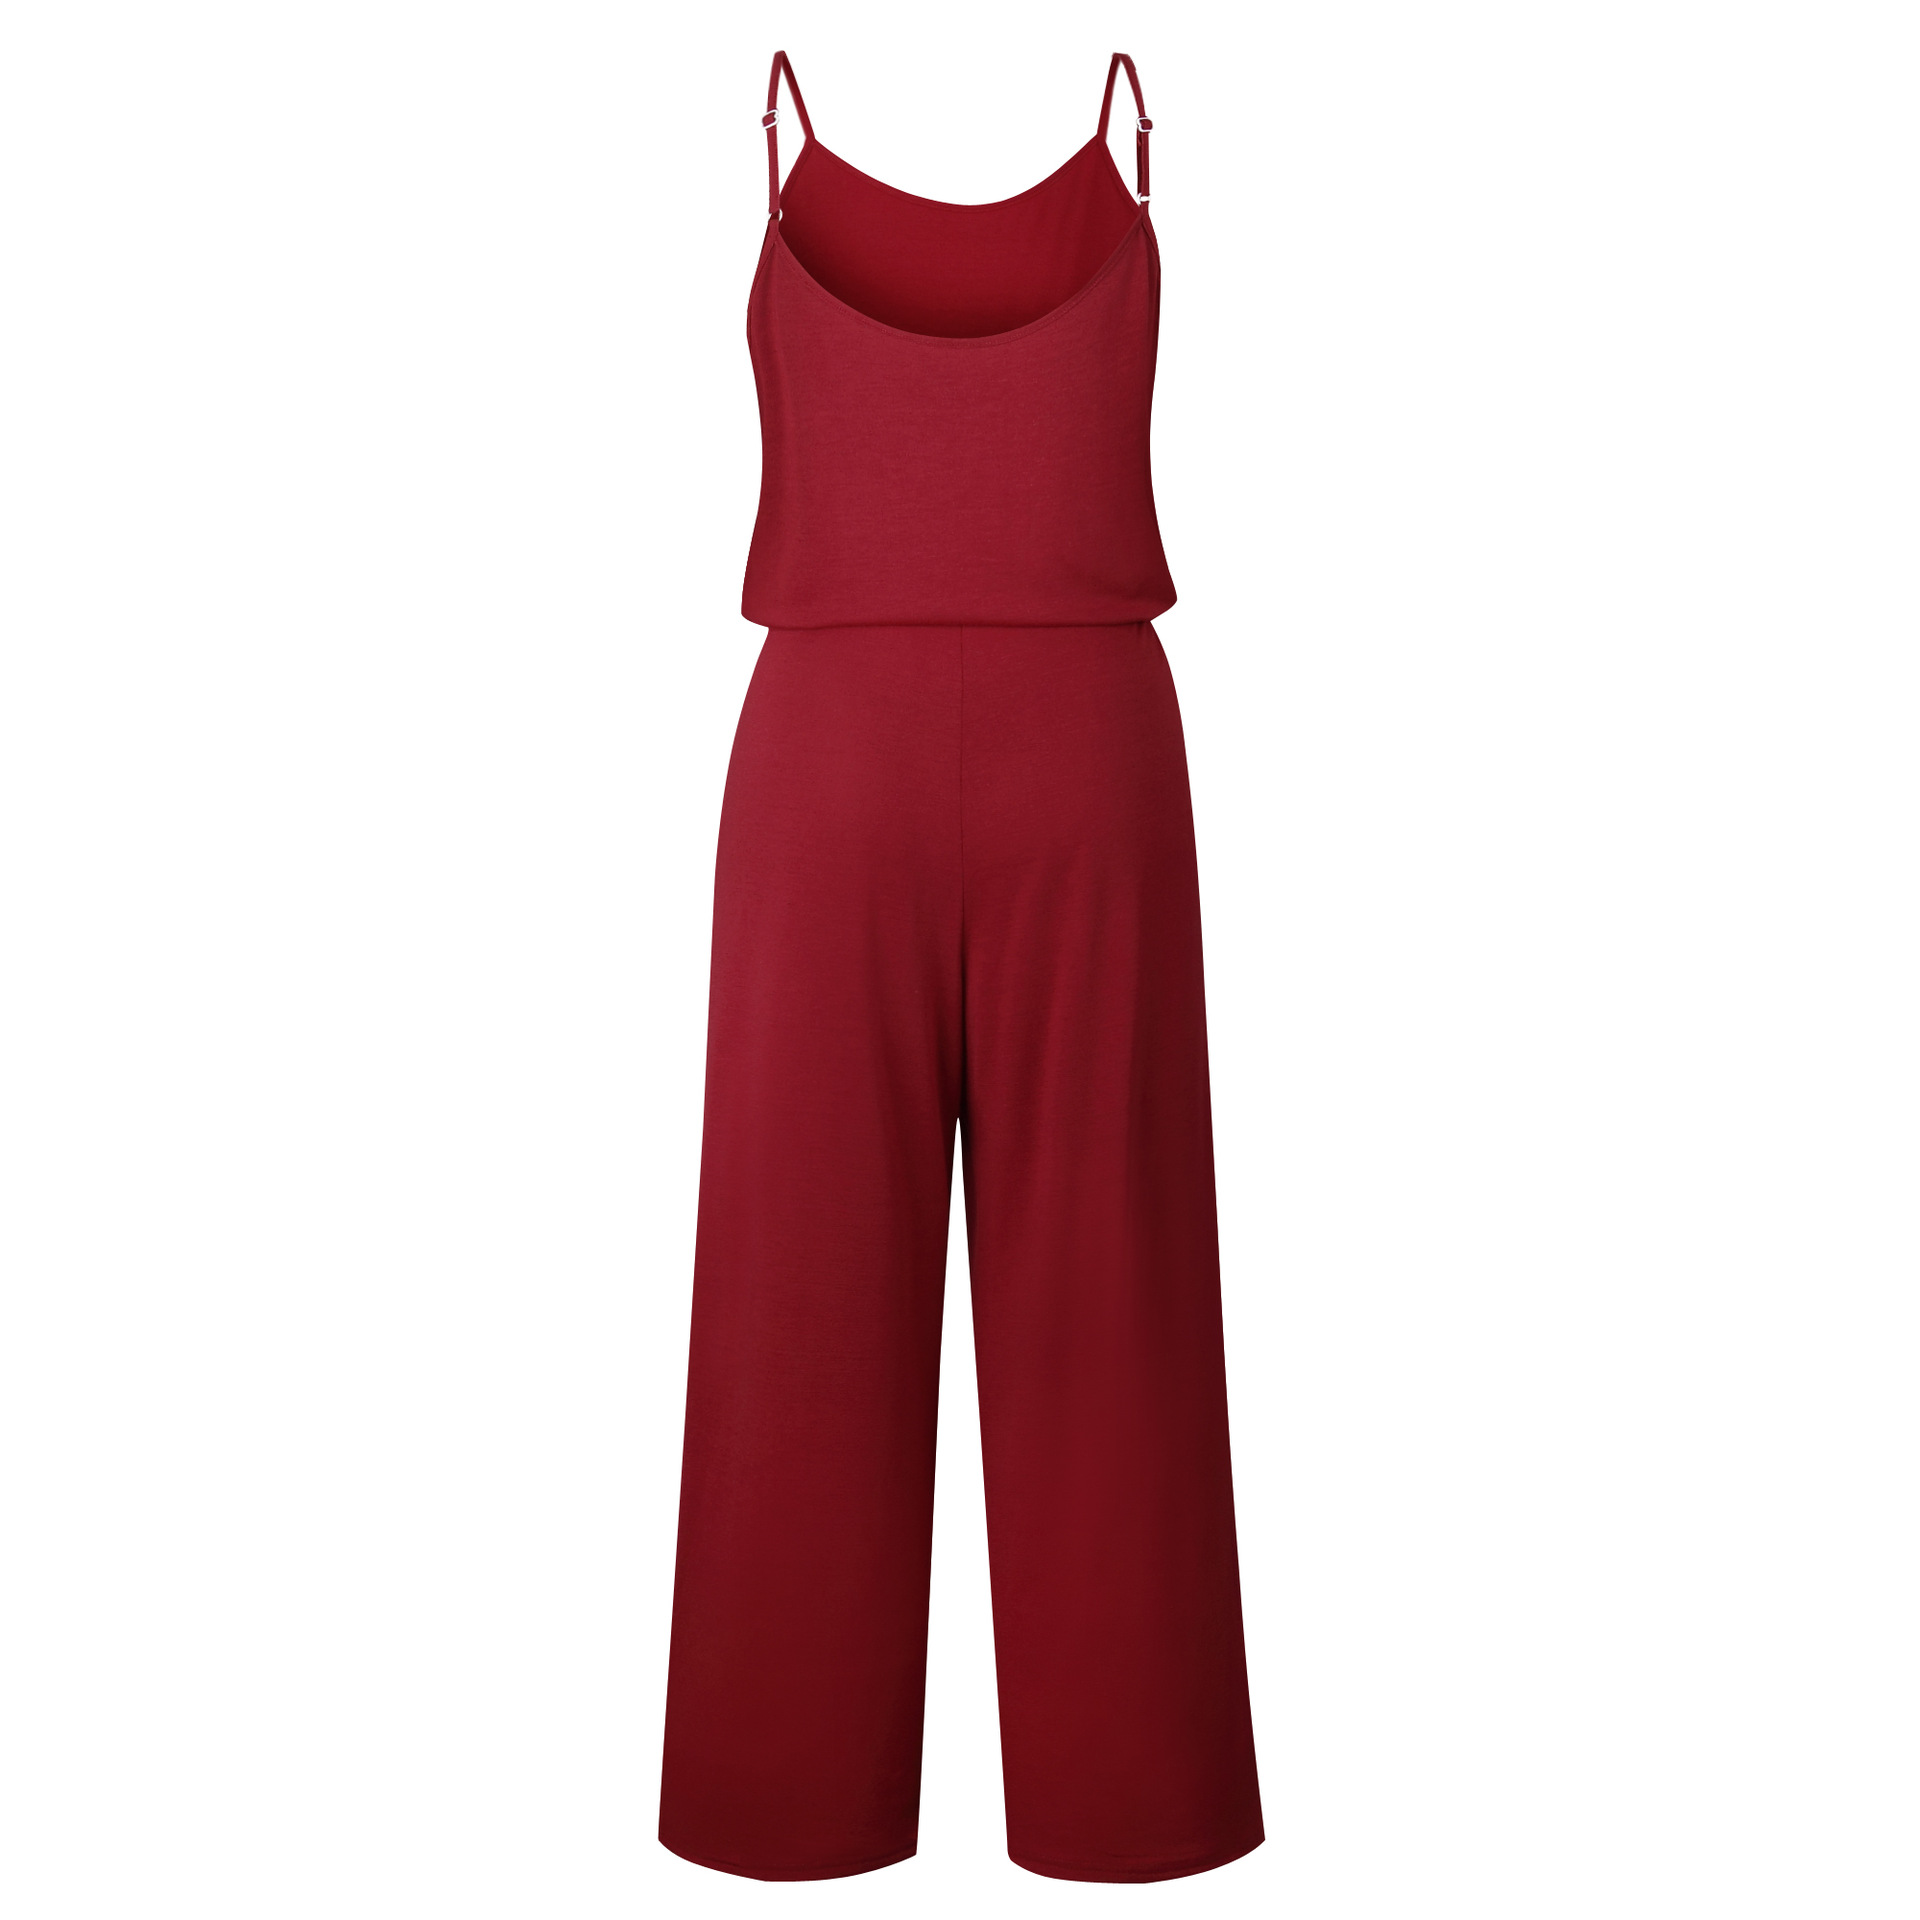 Spaghetti Strap Jumpsuit Women 2018 Summer Long Pants Floral Print Rompers Beach Casual Jumpsuits Sleeveless Sashes Playsuits 62